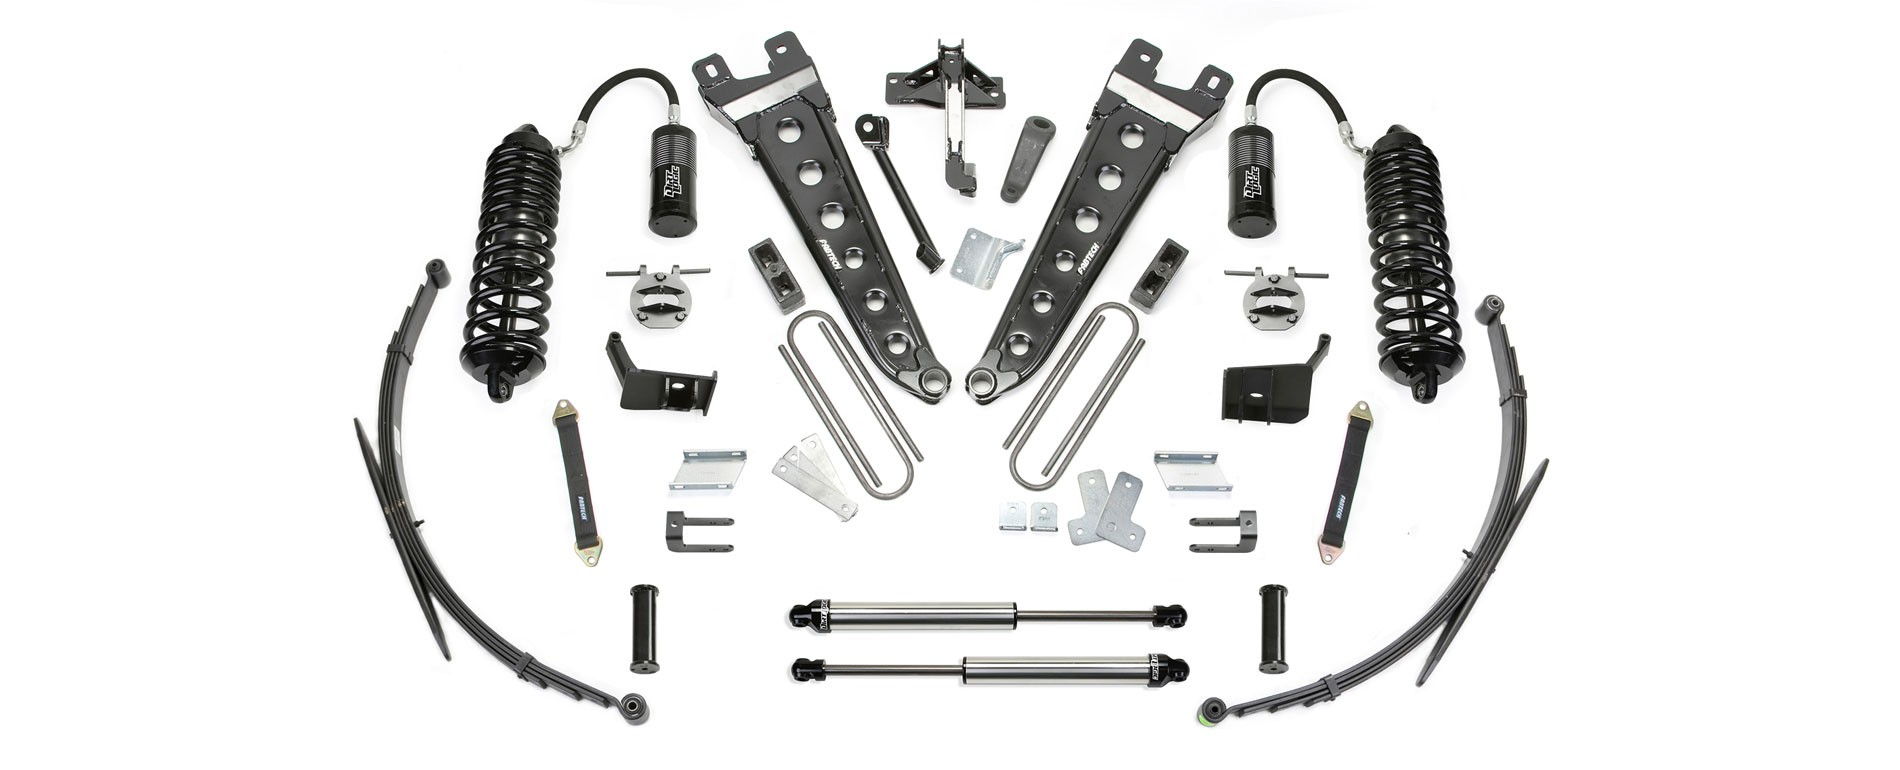 "FABTECH  2011-16  8"" Radius Arm System w/ Front Dirt Logic 4.0 Resi Coilovers & Rear Dirt Logic Shocks - Ford F250/F350 4WD"